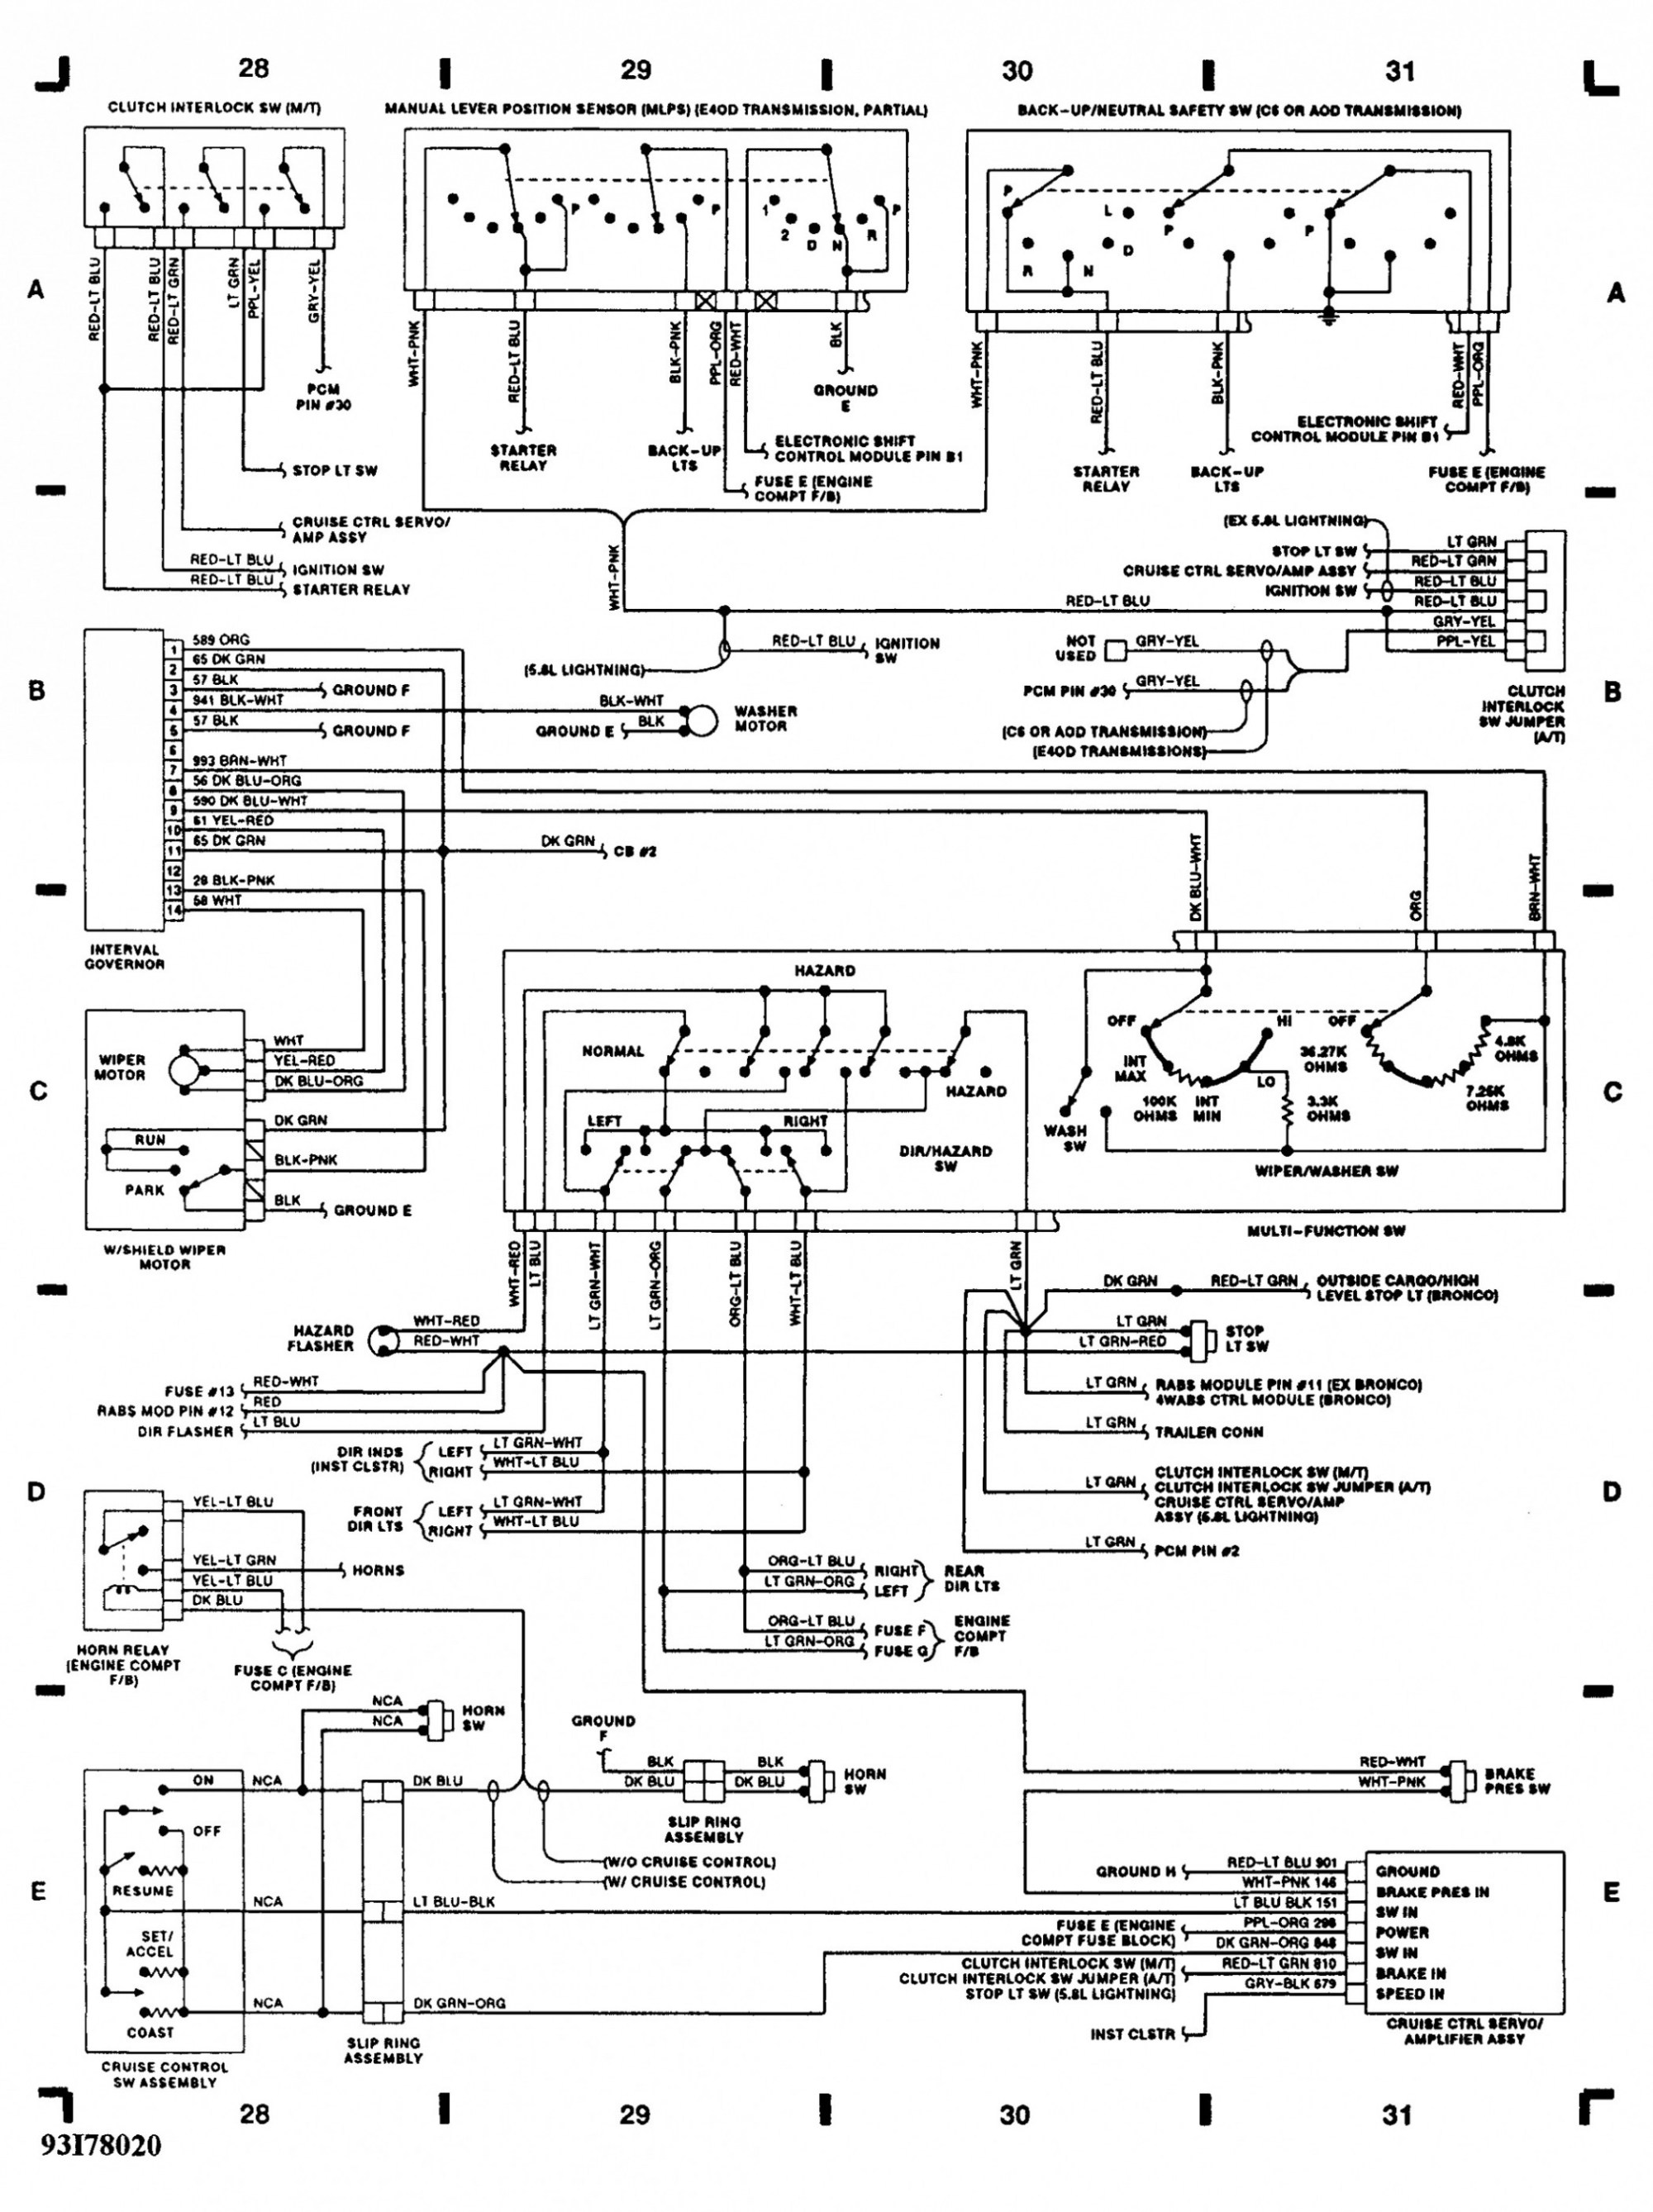 hight resolution of 2003 ford f150 engine diagram 03 f150 fuse panel diagram trusted wiring diagram of 2003 ford